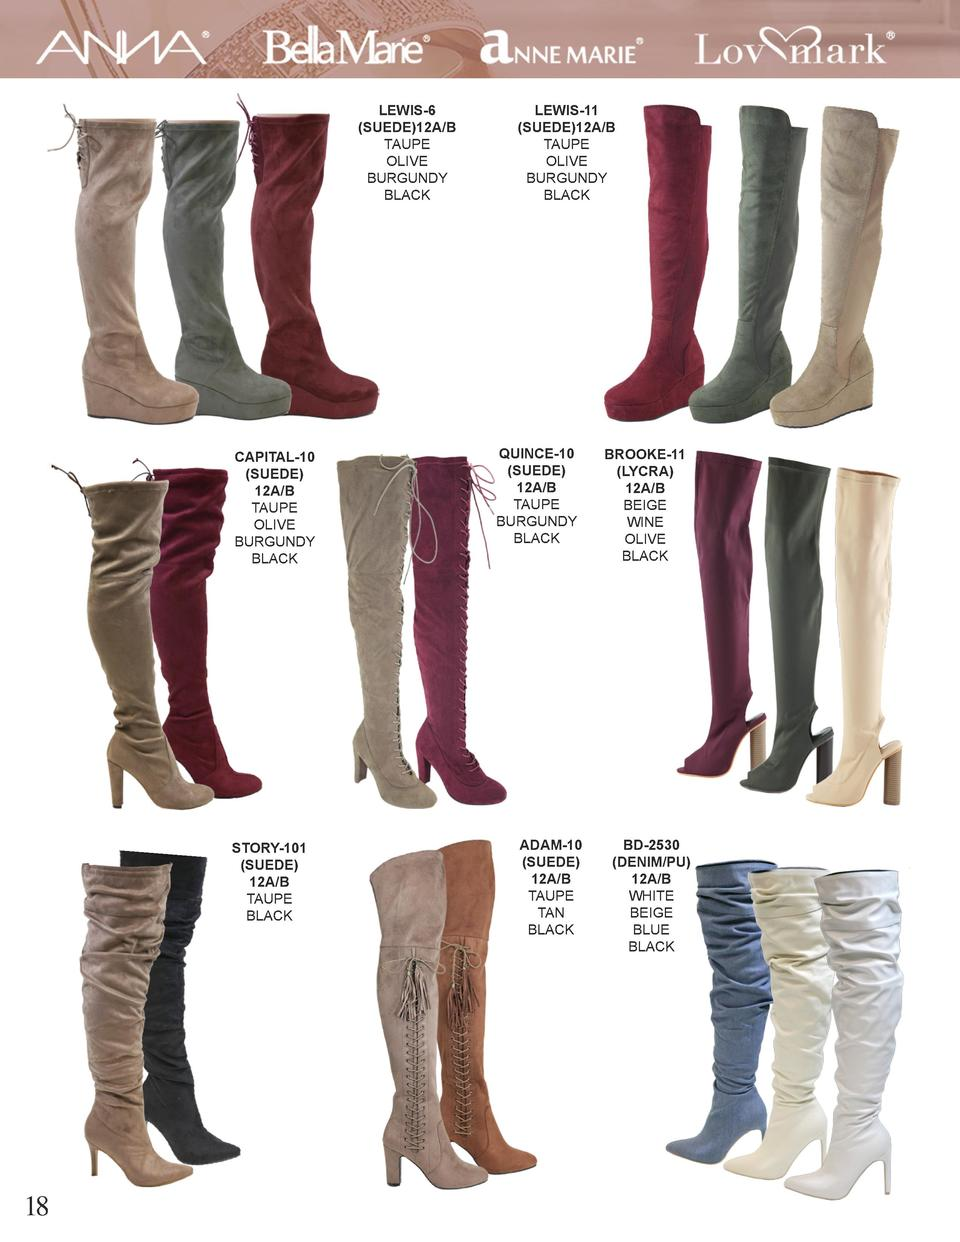 LEWIS-6  SUEDE 12A B TAUPE OLIVE BURGUNDY BLACK  CAPITAL-10  SUEDE  12A B TAUPE OLIVE BURGUNDY BLACK  STORY-101  SUEDE  12...